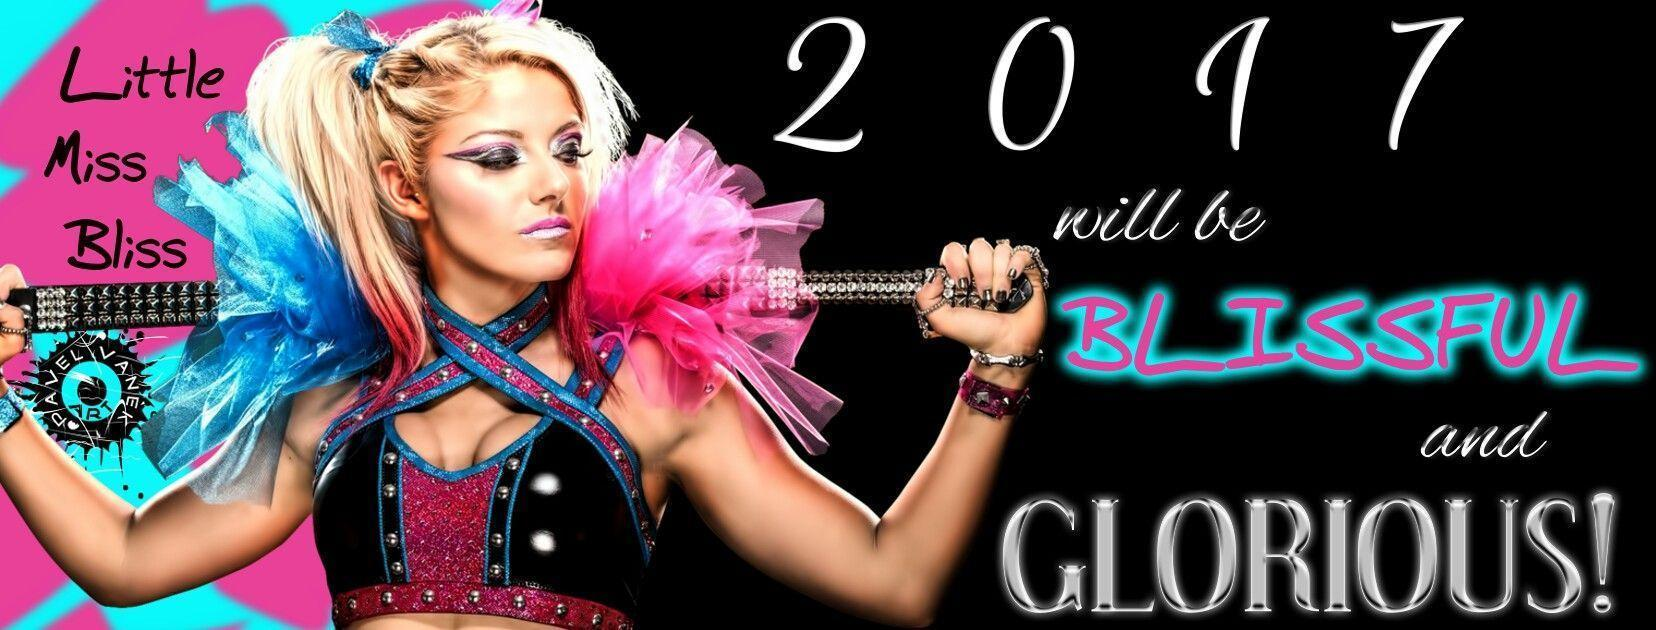 Alexa Bliss Year 2017 Wallpapers